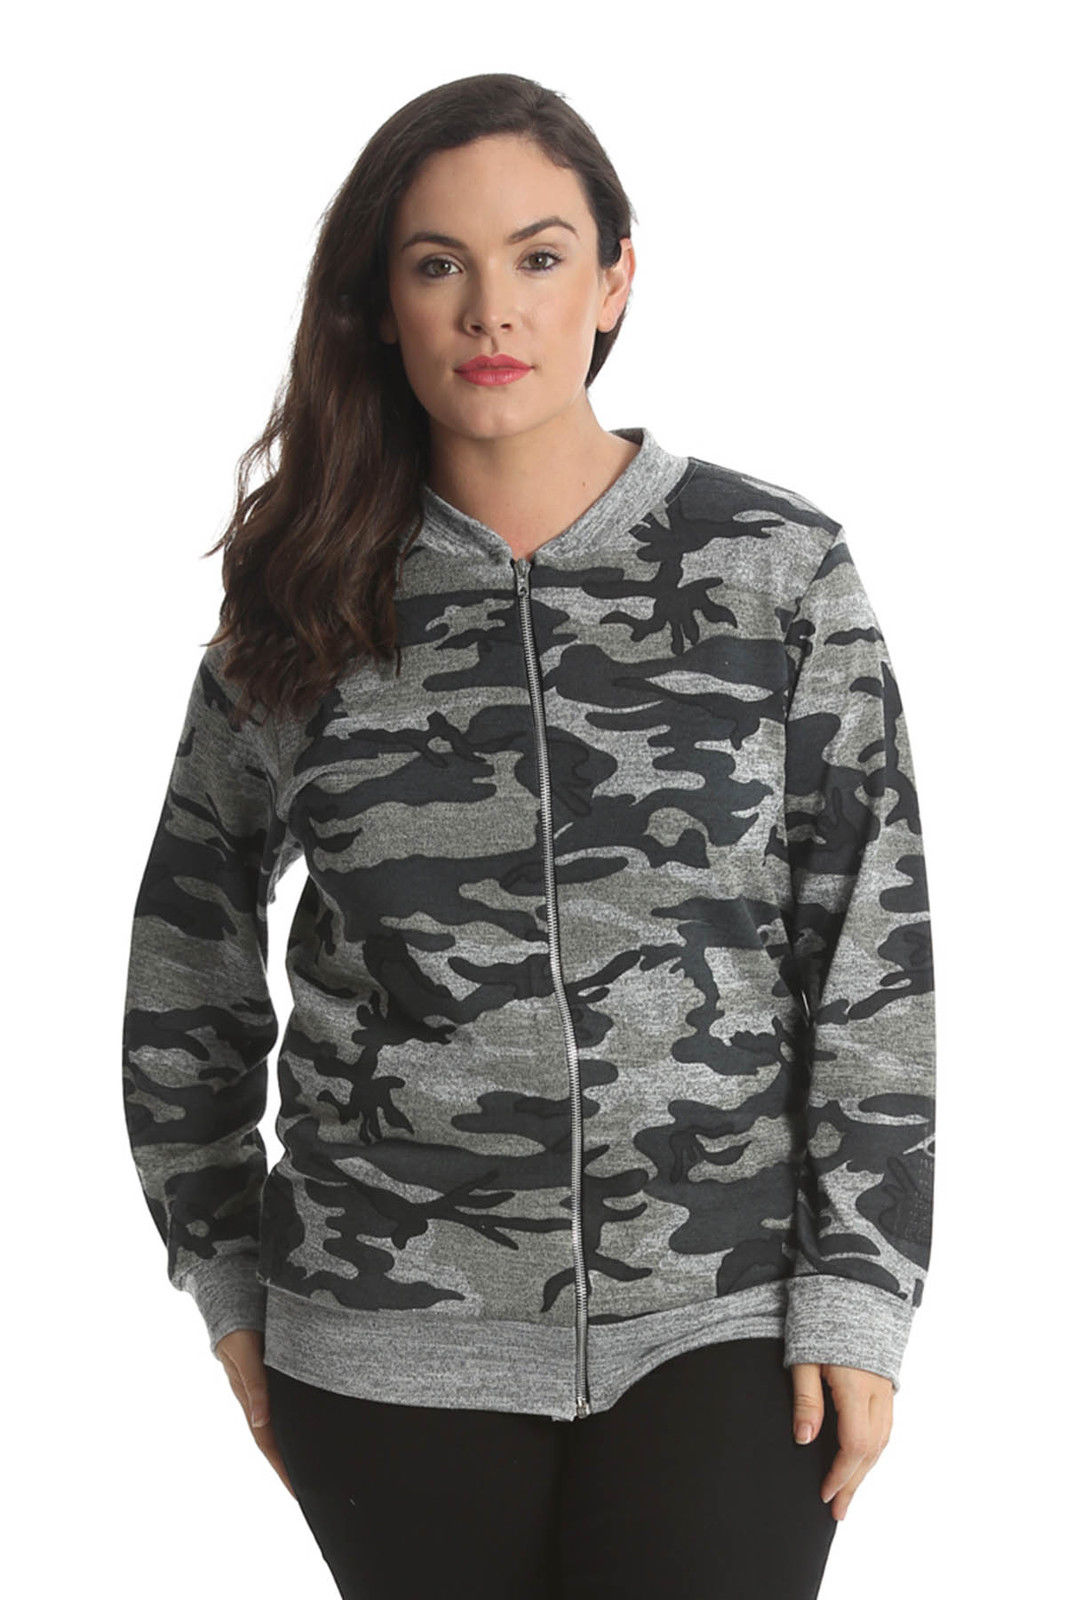 New Ladies Jacket Womens Bomber Jacket Army Camouflage Print Plus Size Nouvelle | EBay